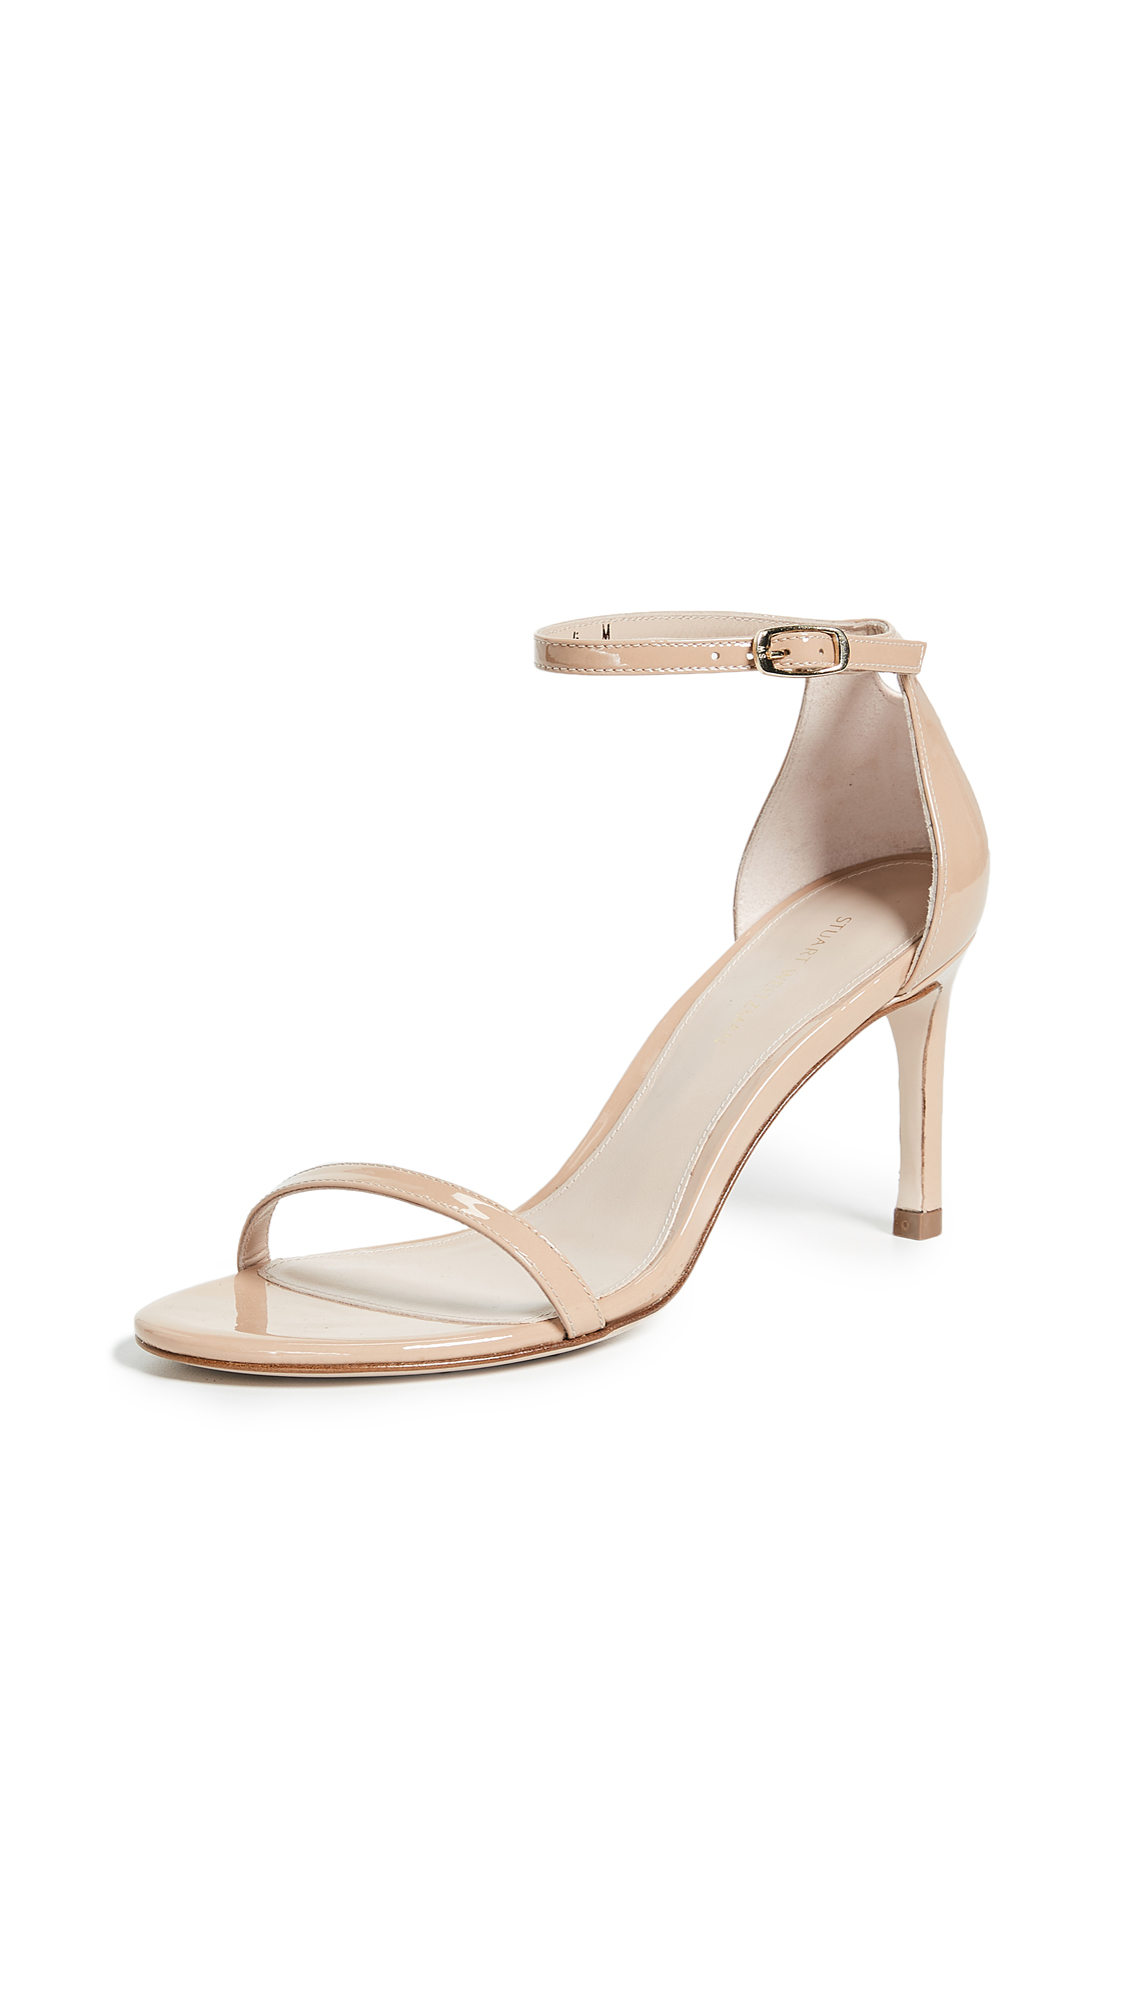 Stuart Weitzman Nudist Traditional 75mm Sandals - Adobe